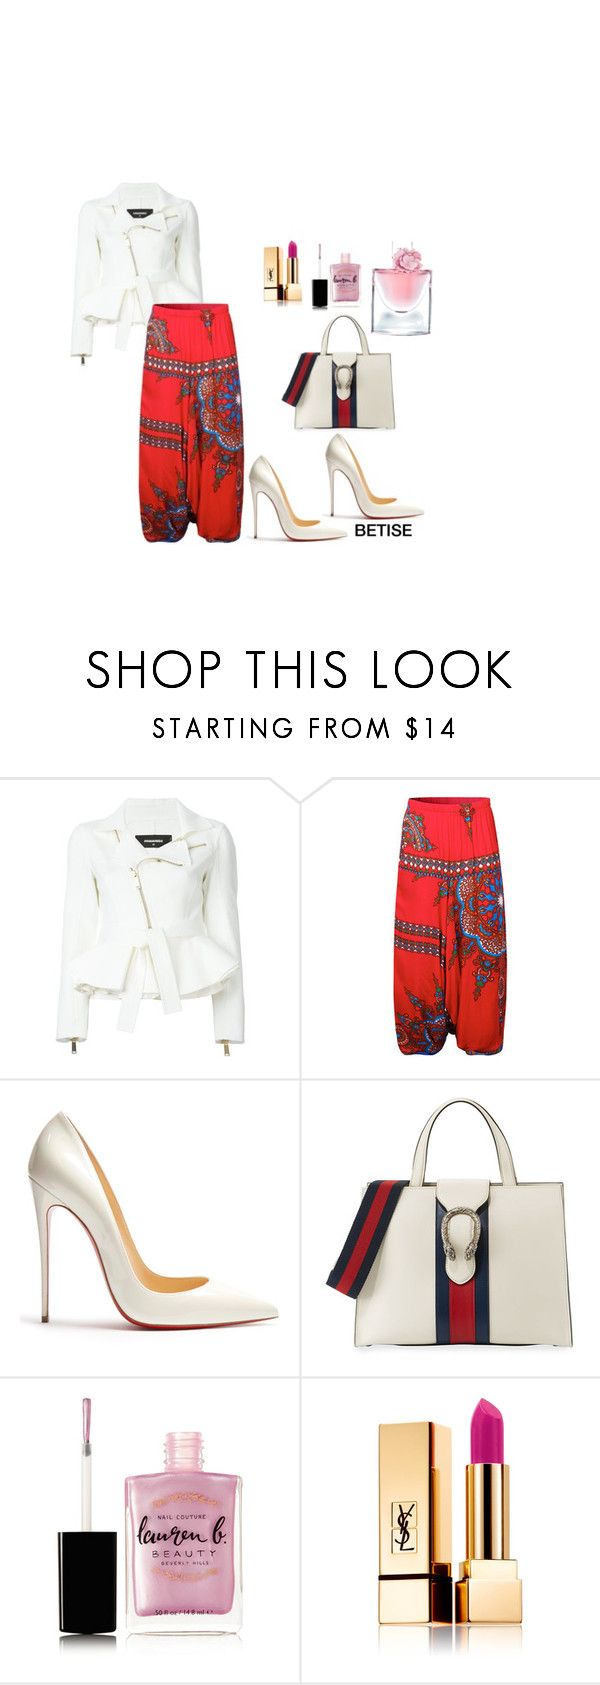 """""""CLASSY !"""" by betty-sanga ❤ liked on Polyvore featuring Dsquared2, Christian Louboutin, Gucci, Lauren B. Beauty, Yves Saint Laurent and Lancôme"""